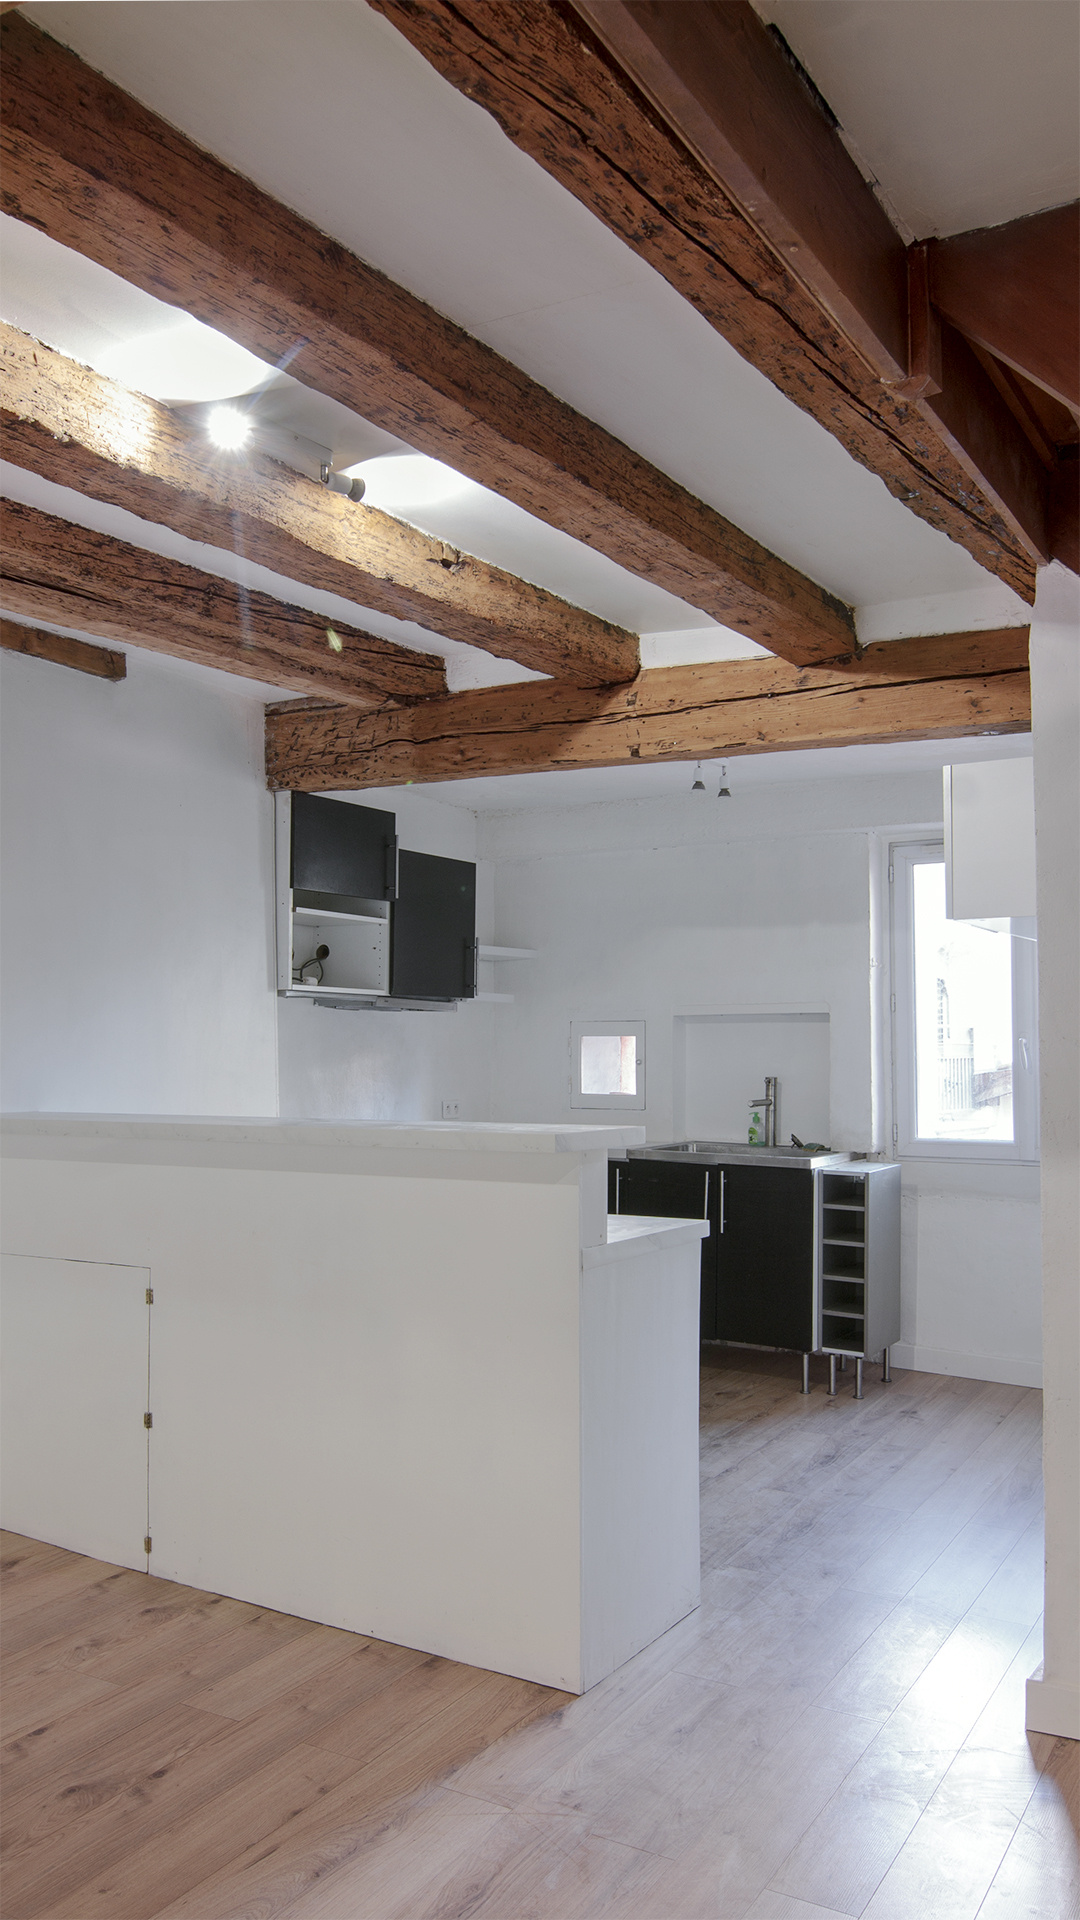 Homki - Vente appartement  de 85.0 m² à grenoble 38000